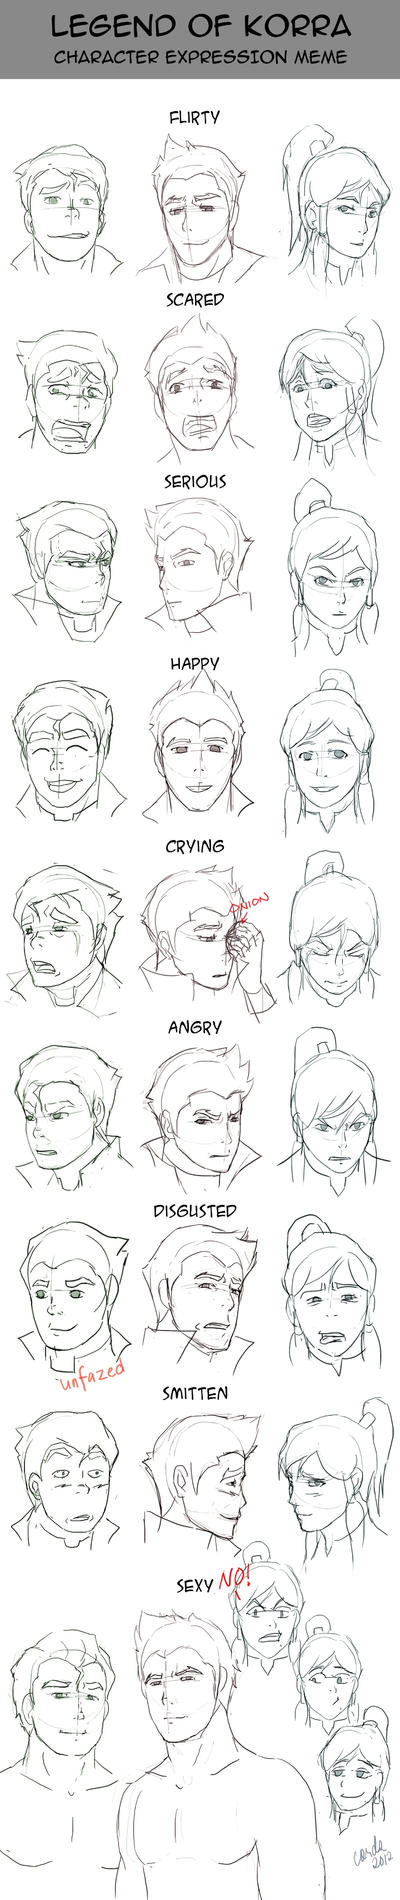 Legend of Korra - Expression Meme